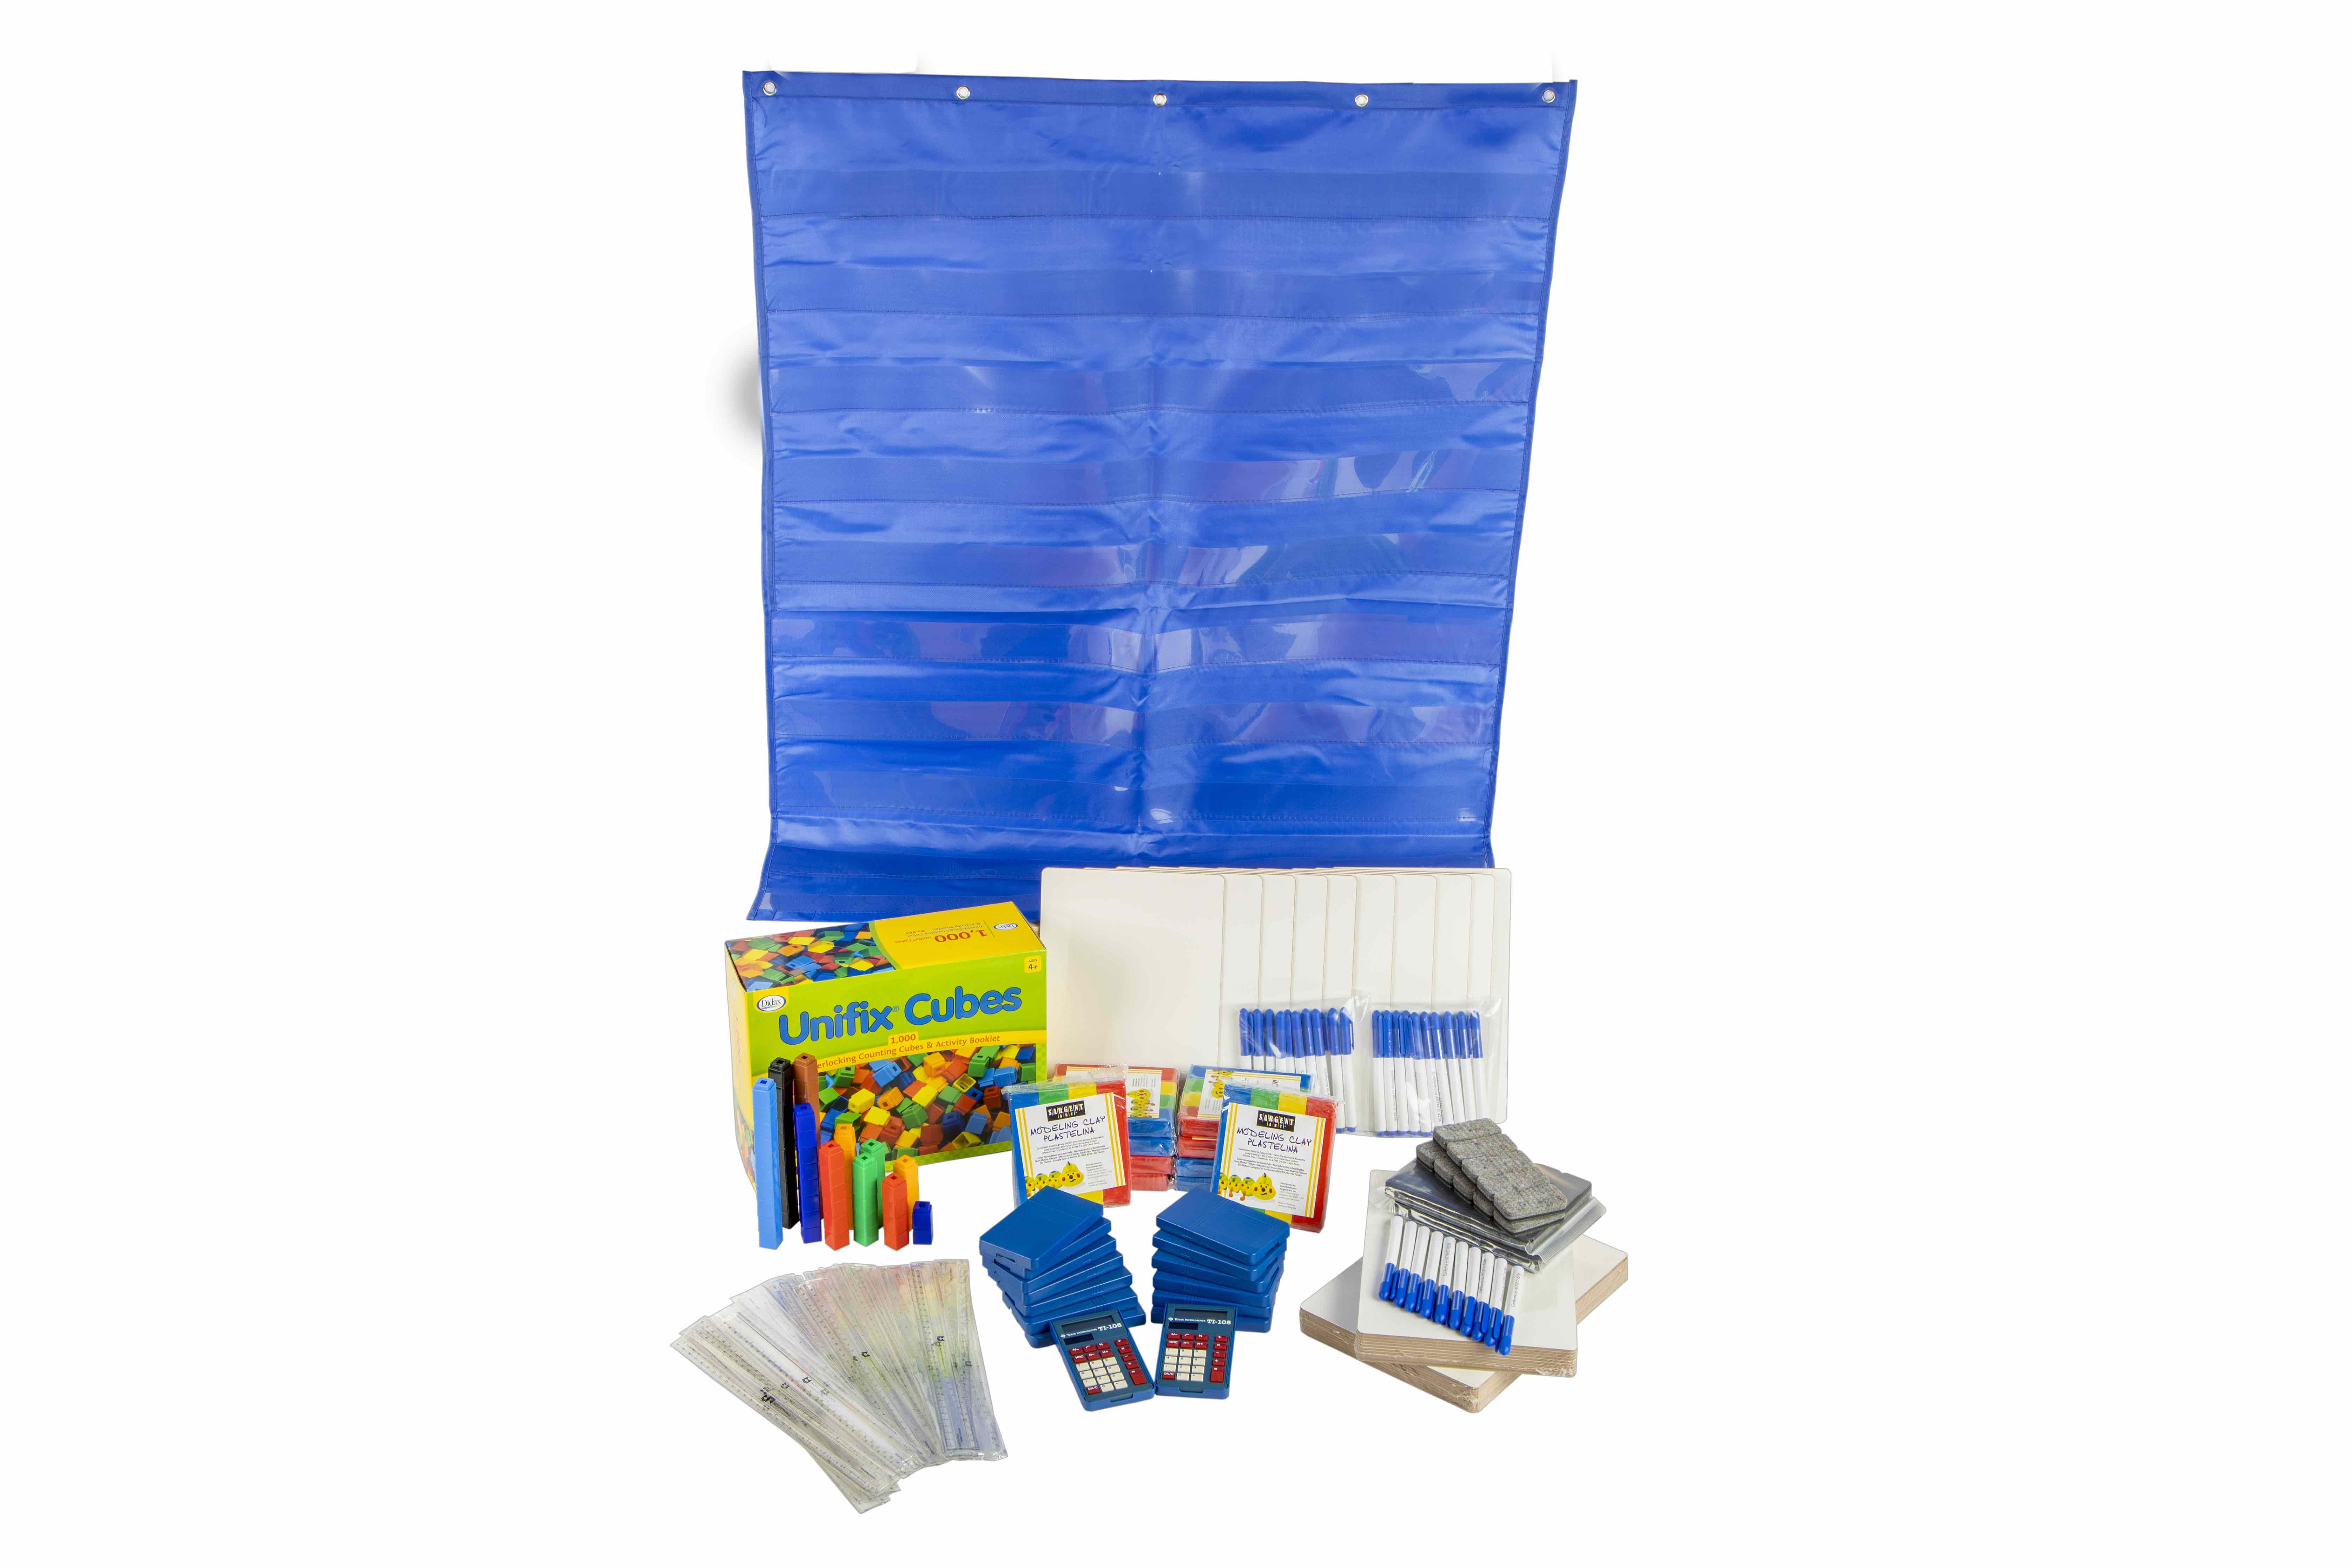 Bridges Grade 3 Required Not Included (RNI) Boxed Set